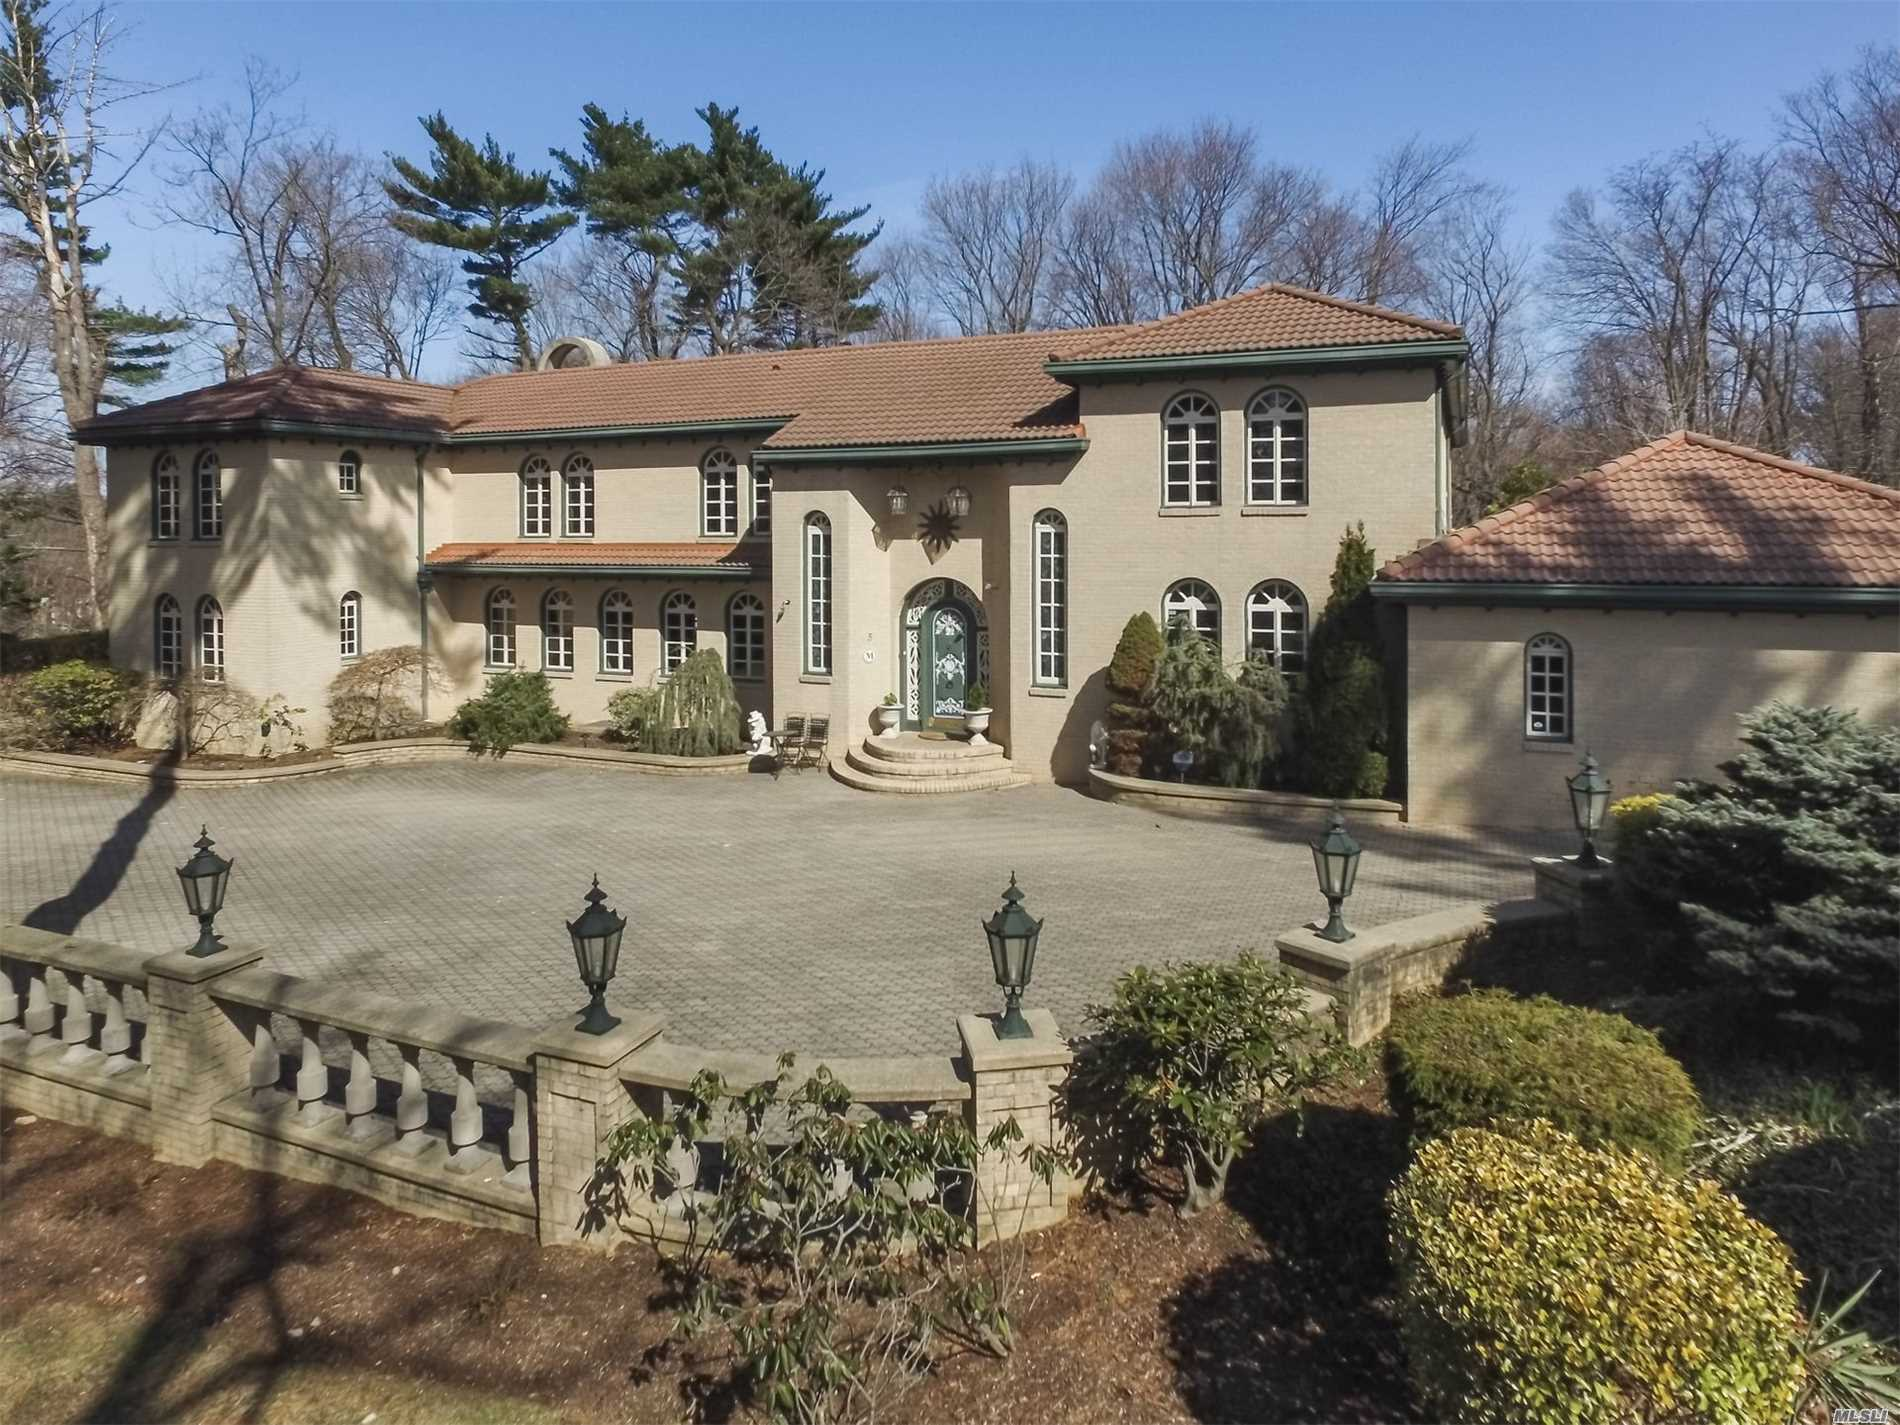 Property for sale at 5 Birch Hill Court, Old Westbury NY 11568, Old Westbury,  New York 11568